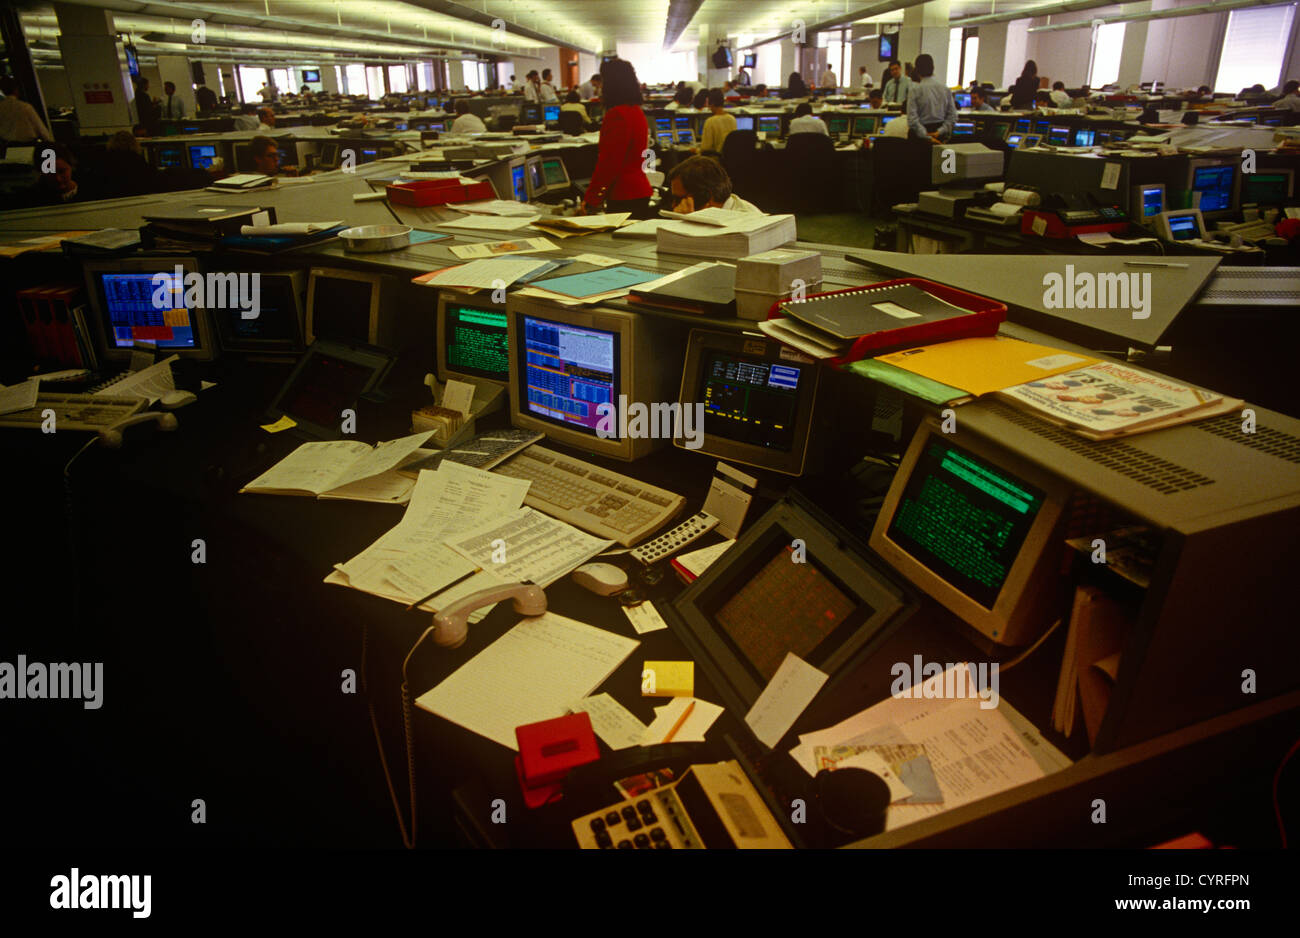 an-interior-of-office-desks-and-90s-comp